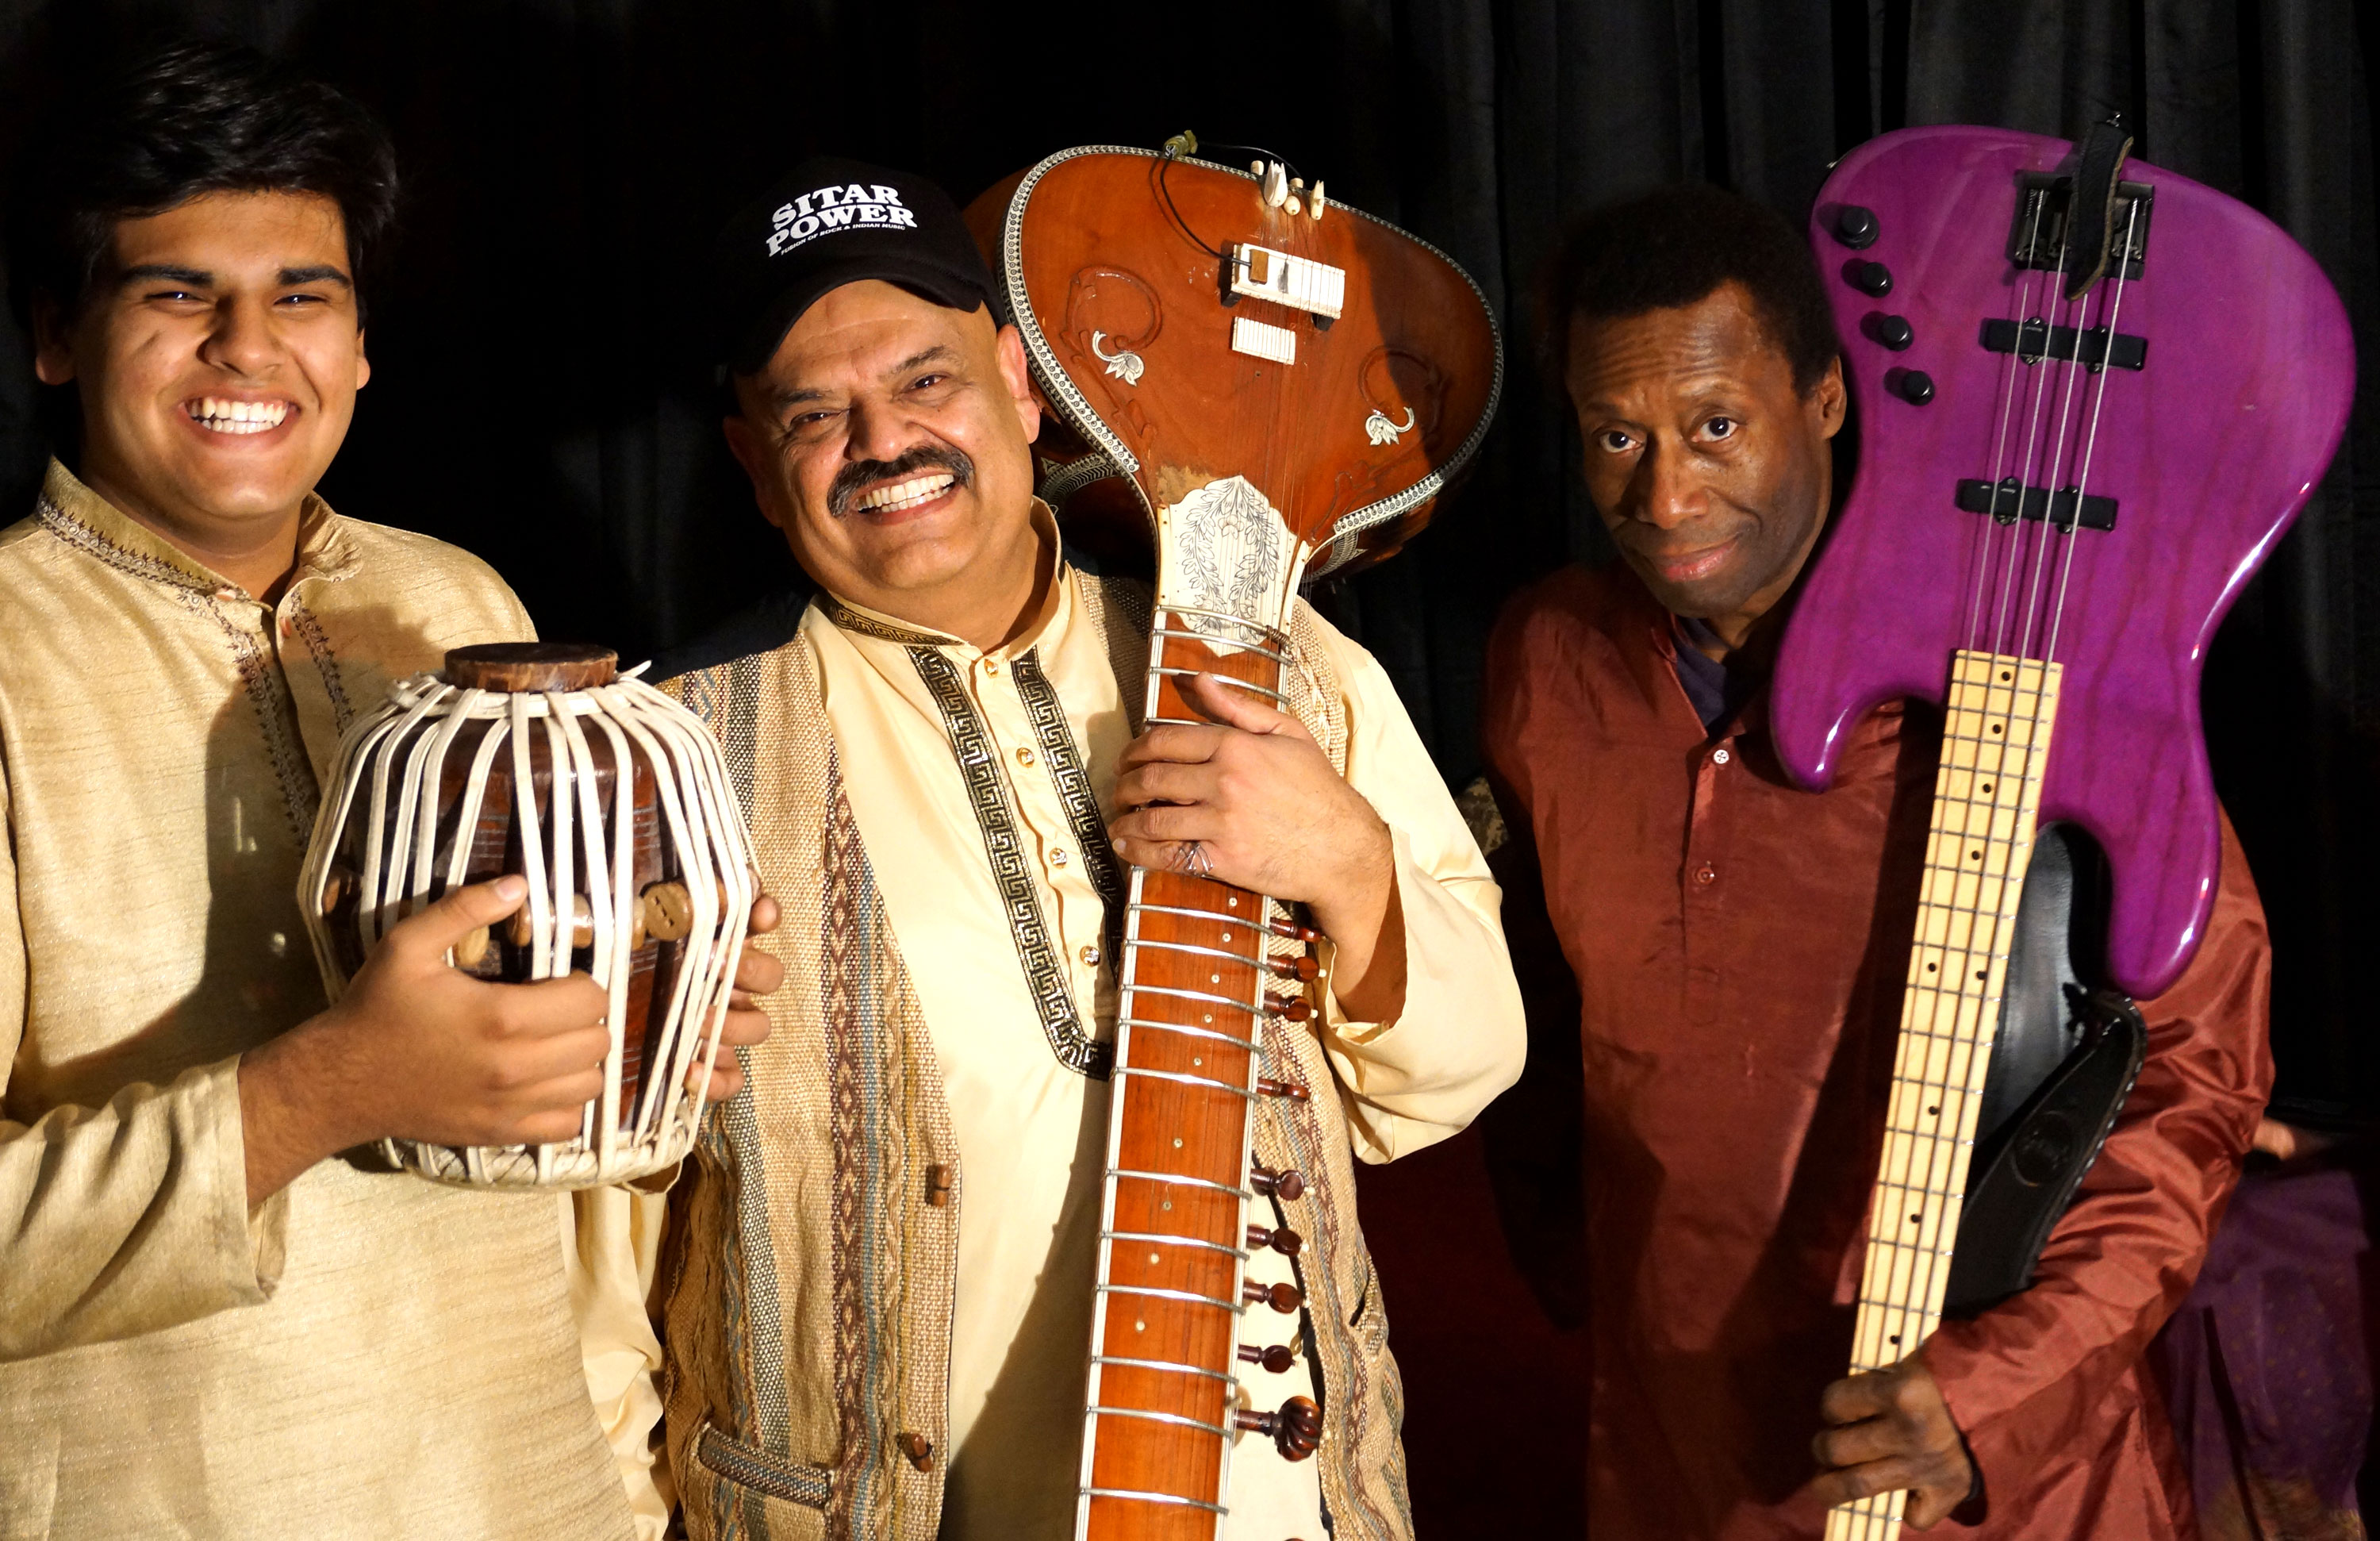 Ashwin Batish and his Sitar Power Trio: With Keshav Batish on Tabla and Drum Set, Myron Dove on Bass and Ashwin Batish on Sitar and Tabla. Picture by Mohini Batish, Santa Cruz, California, USA. All rights reserved. �14 Batish Records. Copyrighted image.